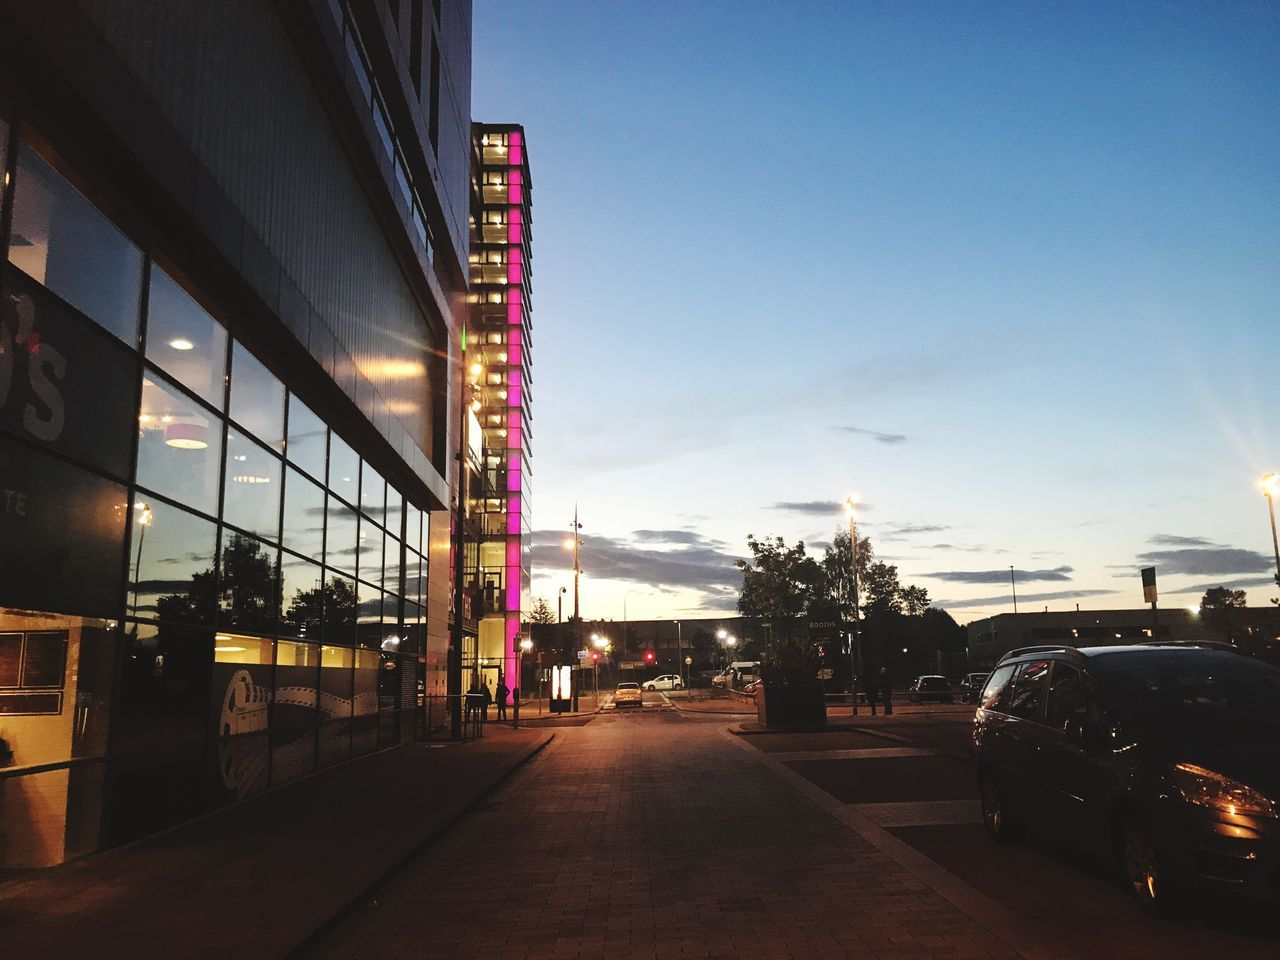 Architecture Car Built Structure City Road Illuminated Sunset Manchester Mediacityuk Cloud - Sky Night